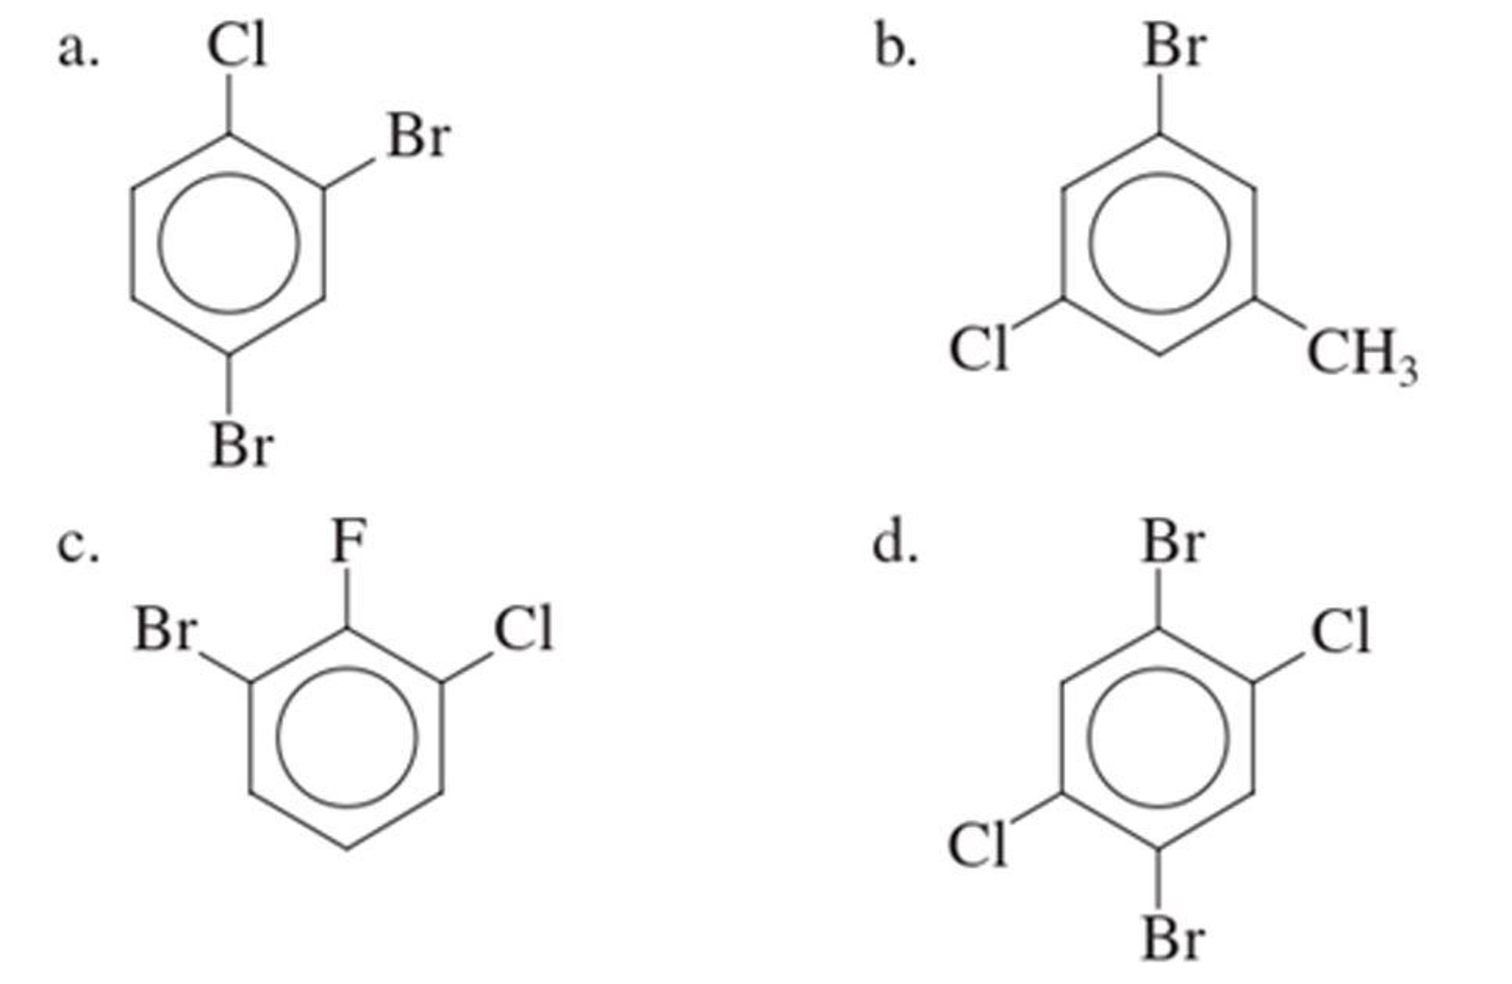 Chapter 2, Problem 2.111EP, Assign an IUPAC name to each of the following substituted benzenes.